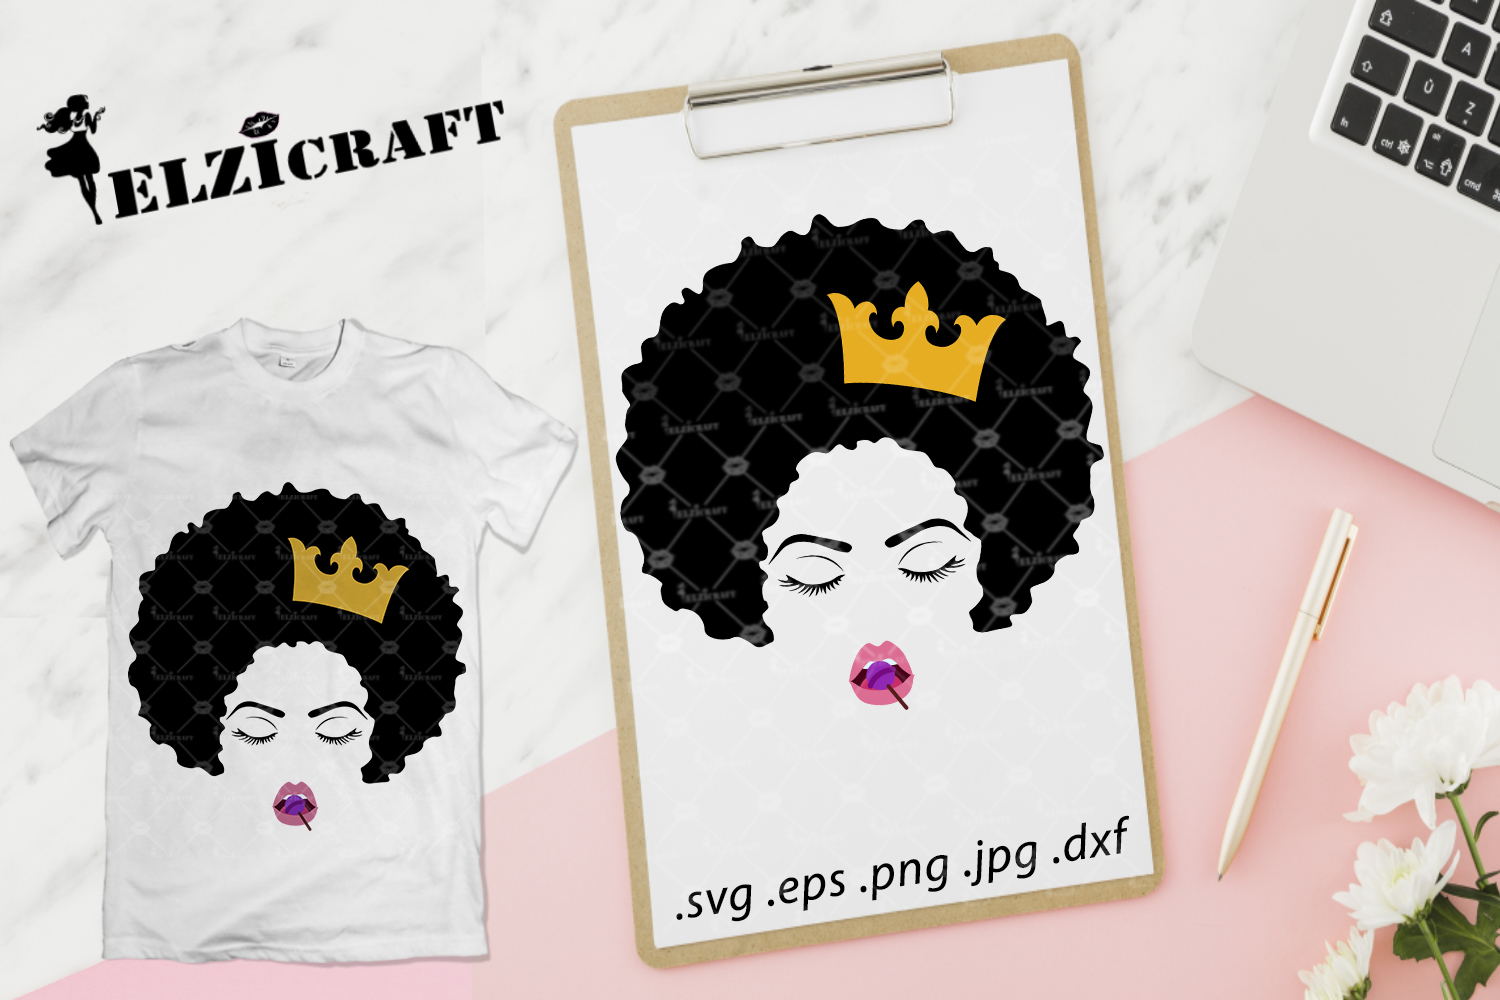 Download Free Afro Woman Face Crown Lollipop Lips Graphic By Elzicraft for Cricut Explore, Silhouette and other cutting machines.